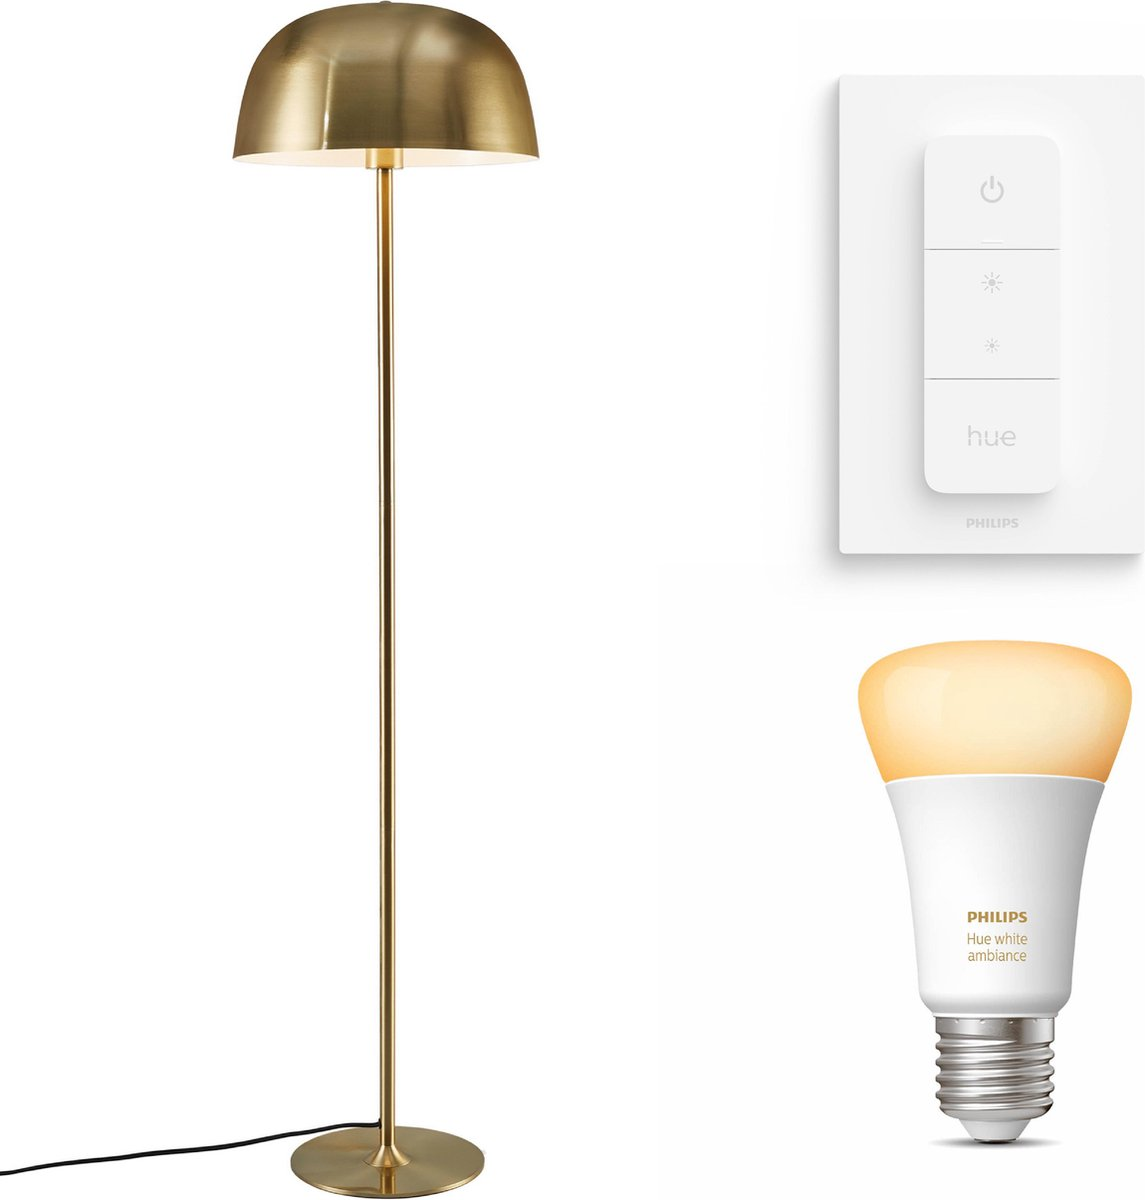 Nordlux Cera vloerlamp - LED - goud - 1 lichtpunt - incl. Philips Hue White Ambiance E27 & dimmer